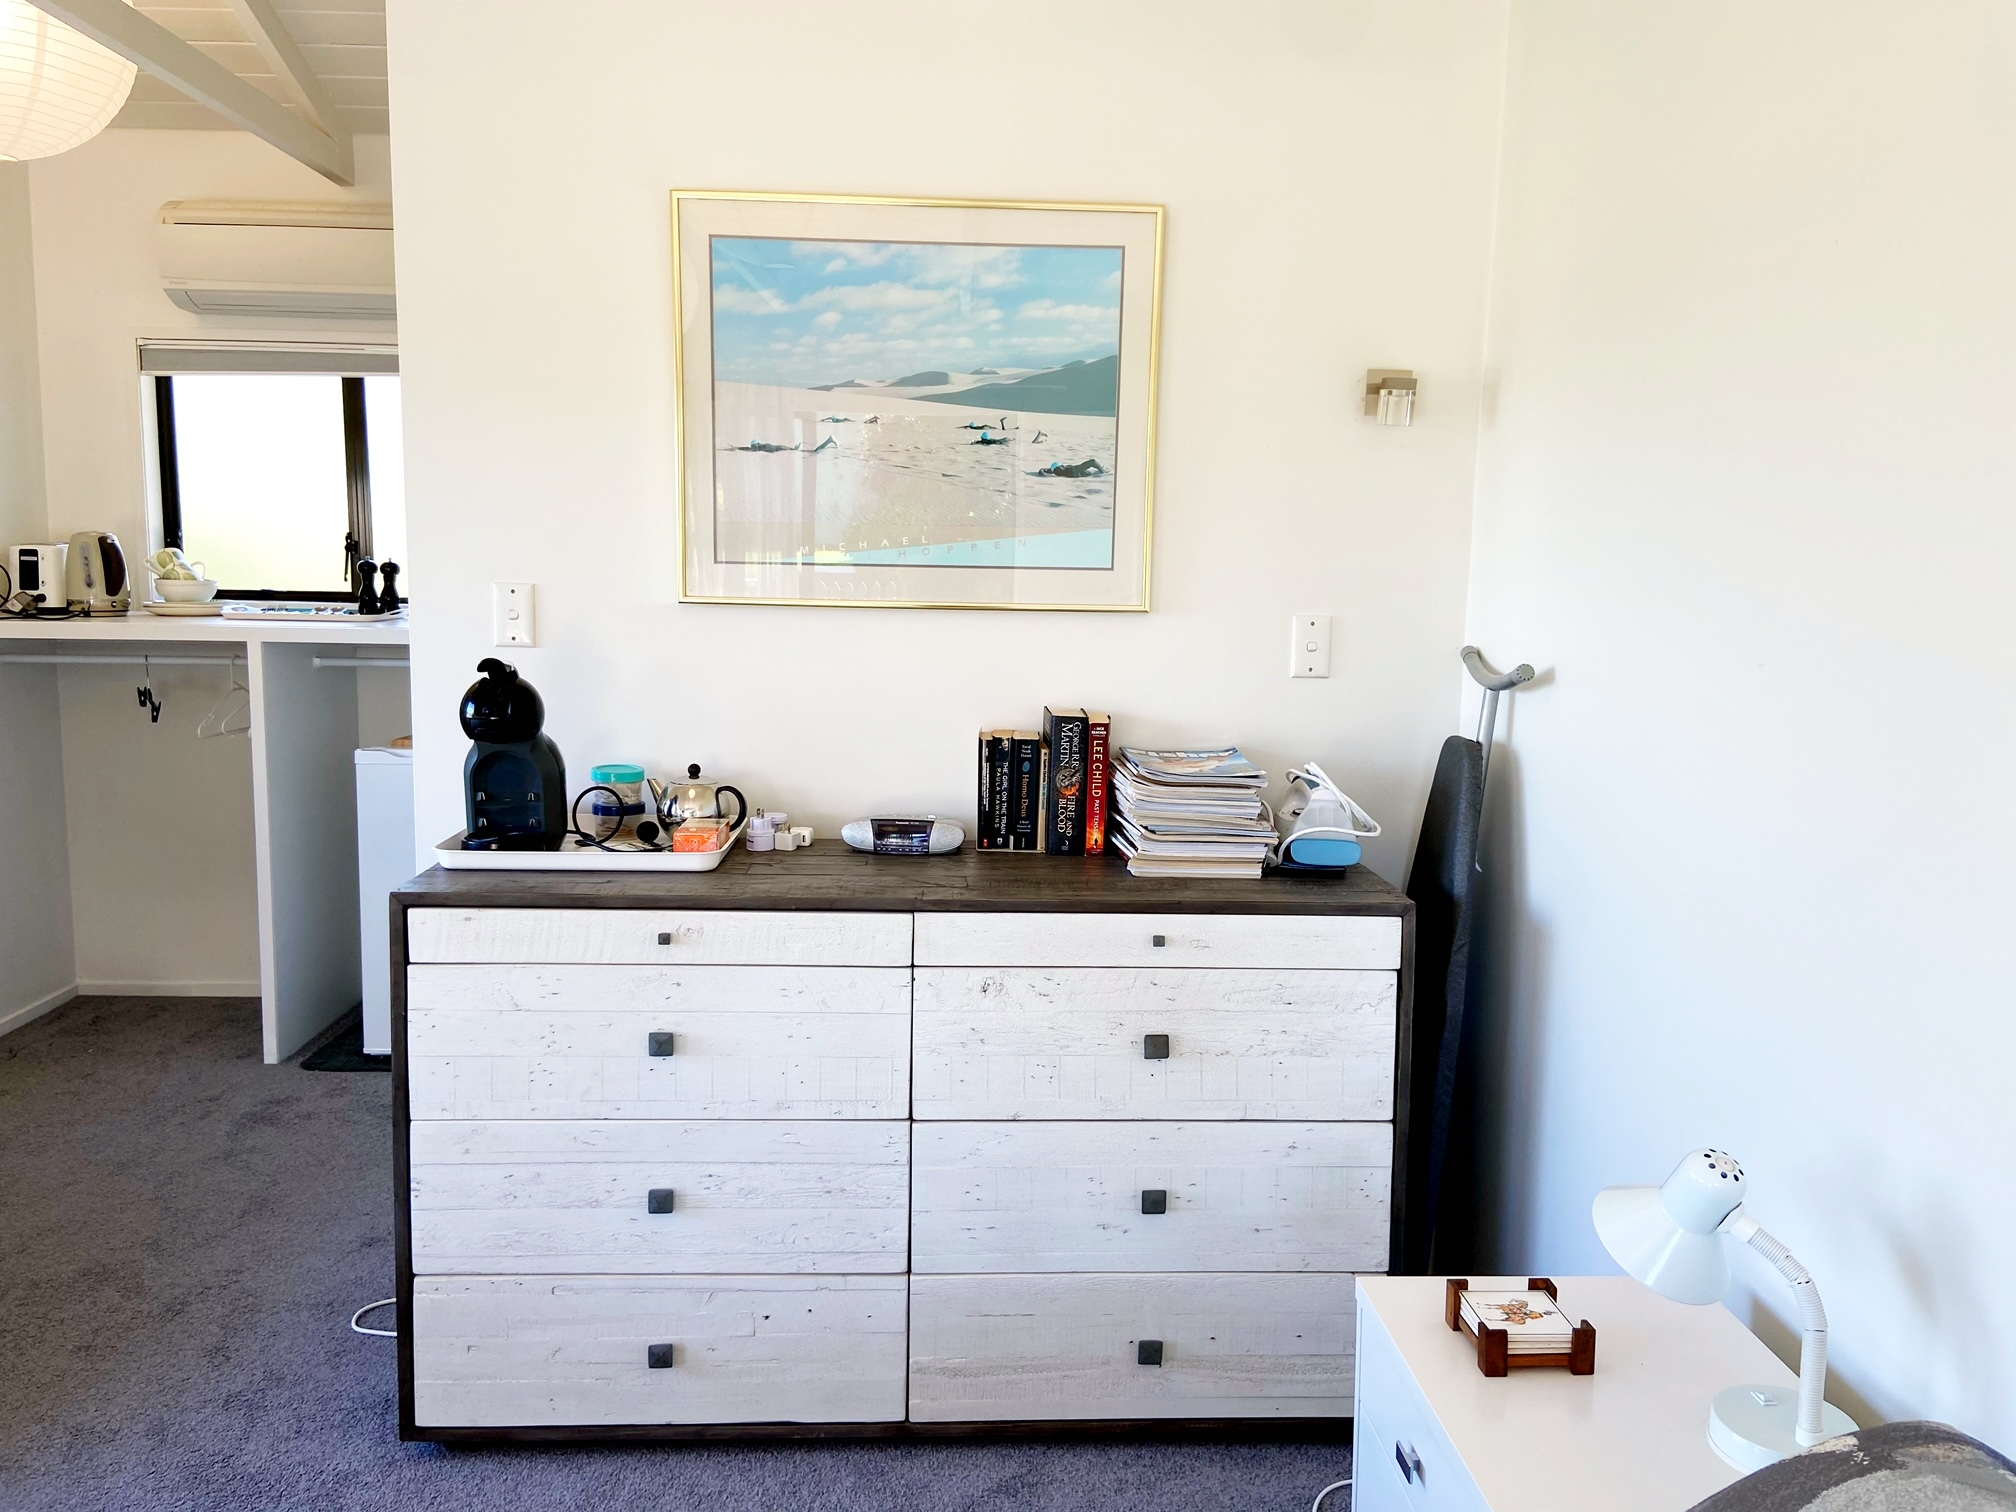 4.Chest-of-drawers.jpg